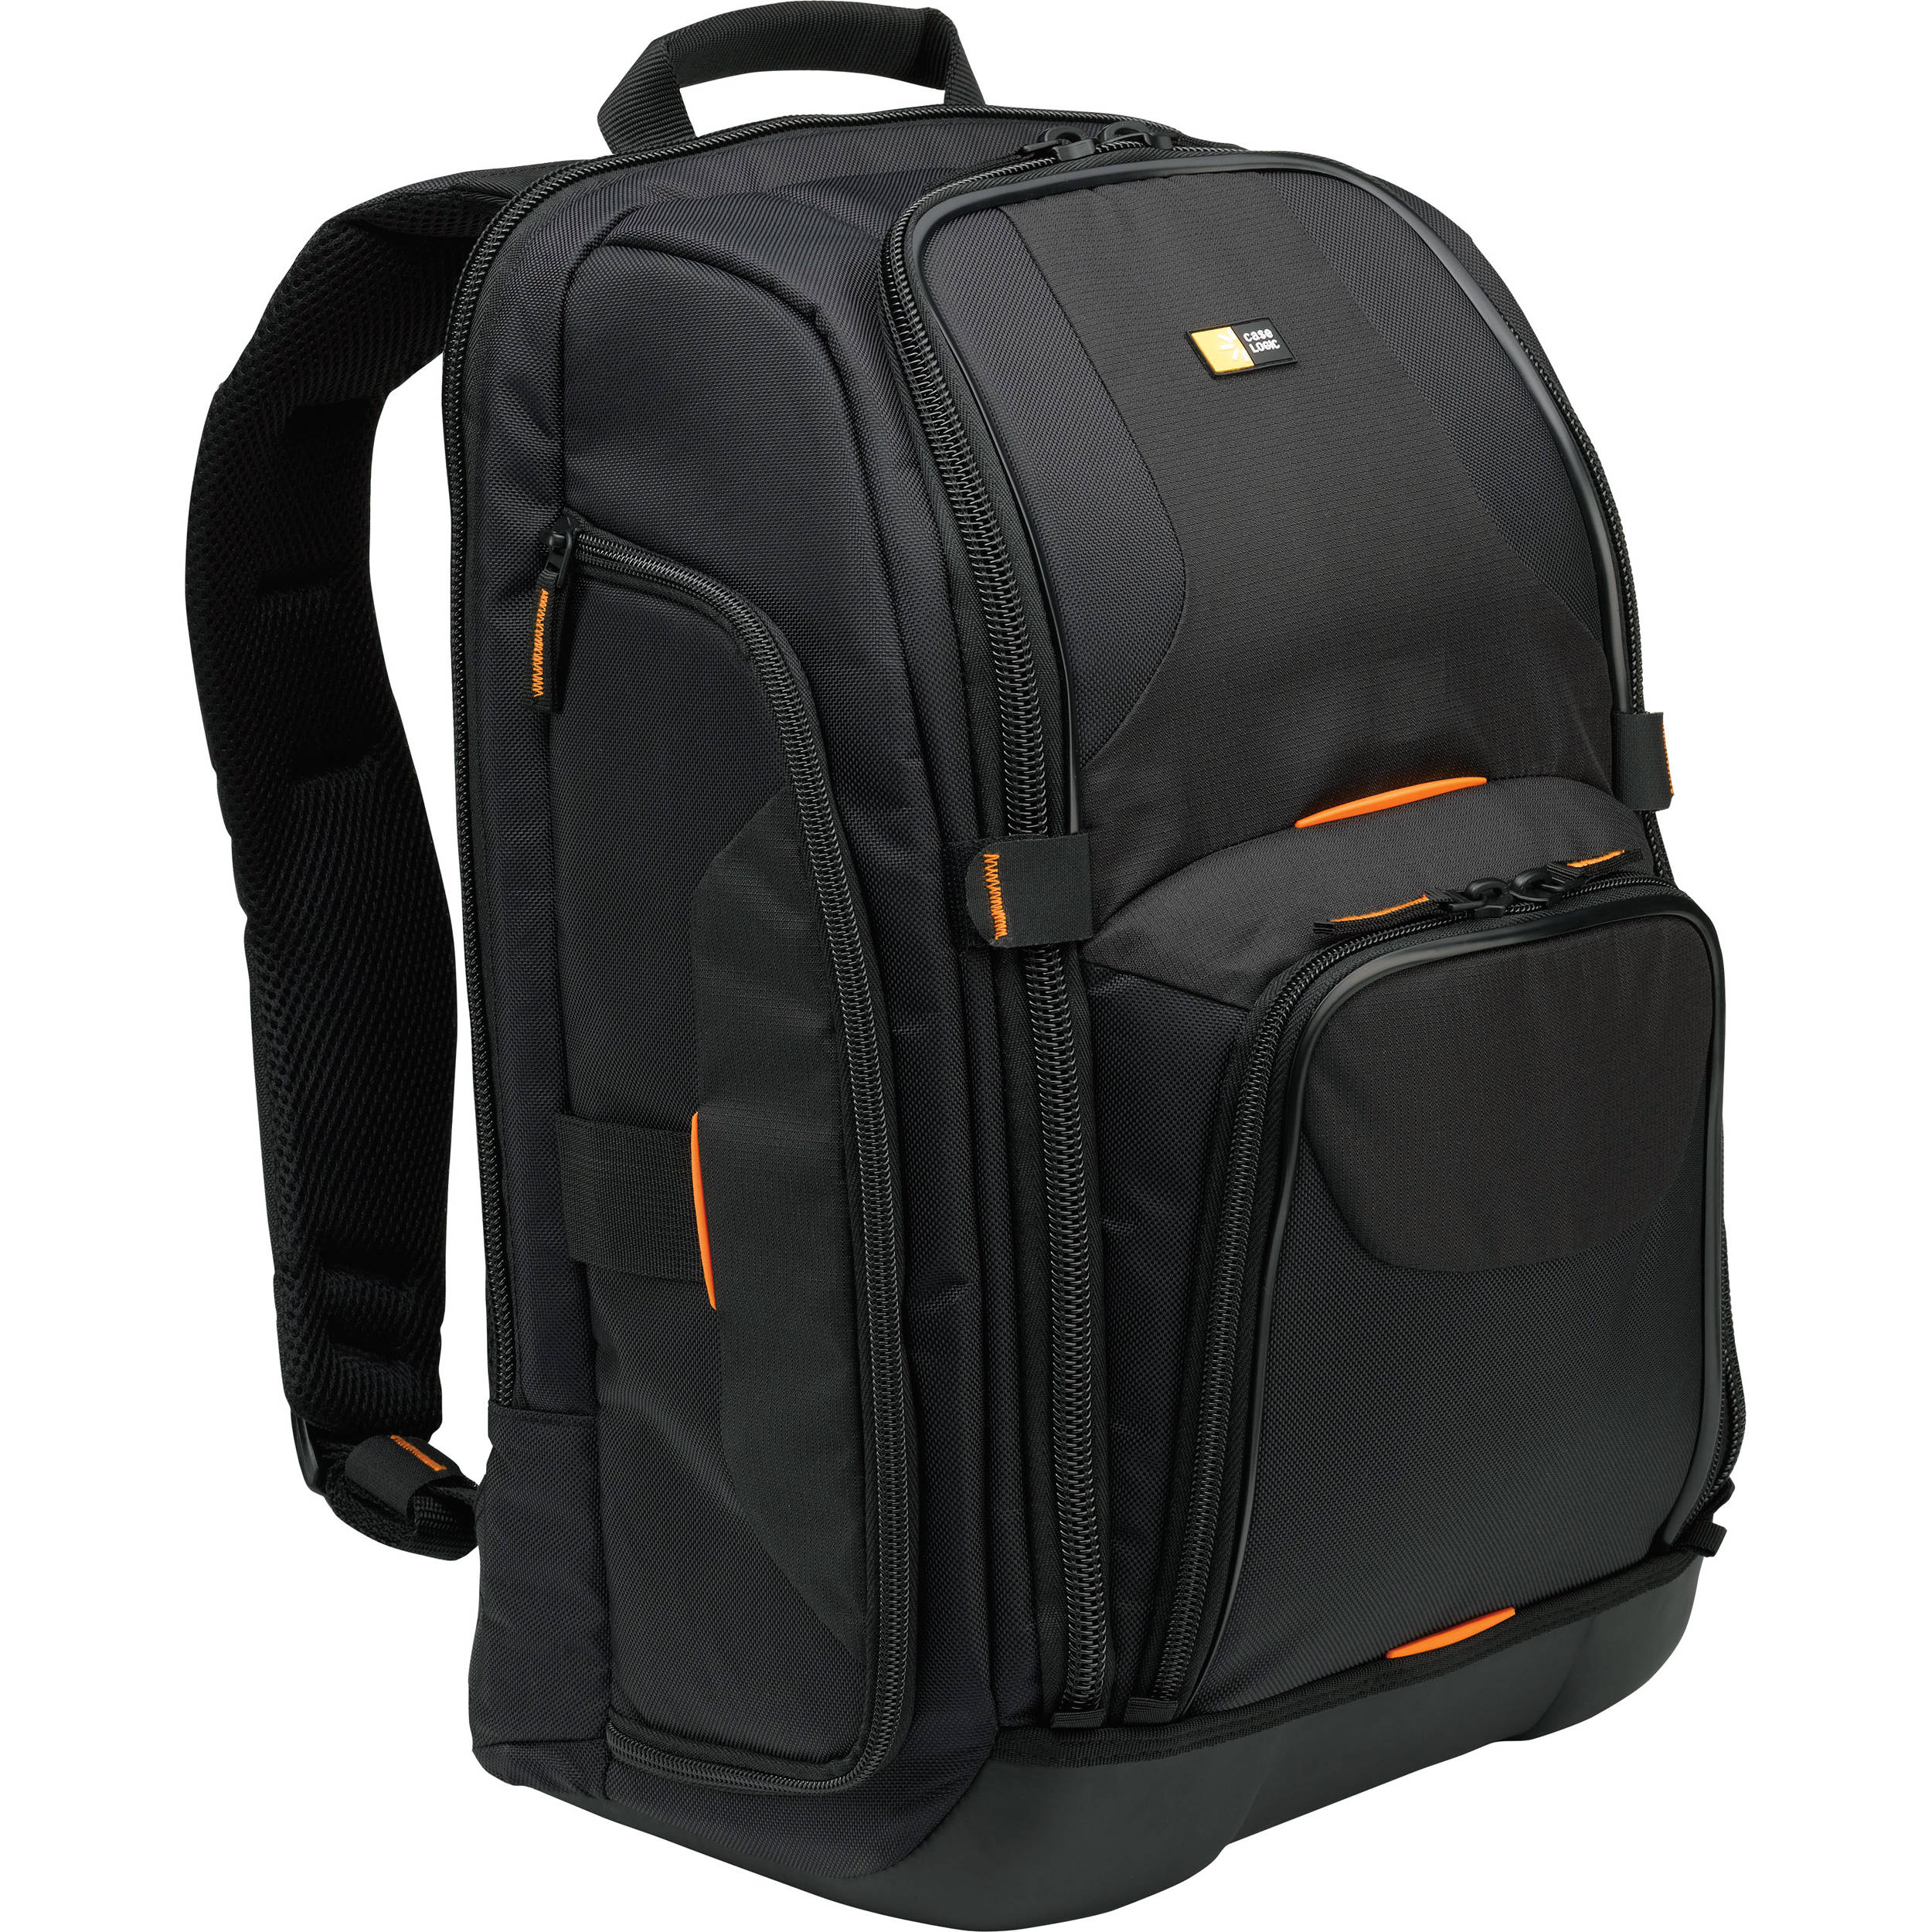 Case Logic Slrc 206 Slr Camera Laptop Backpack